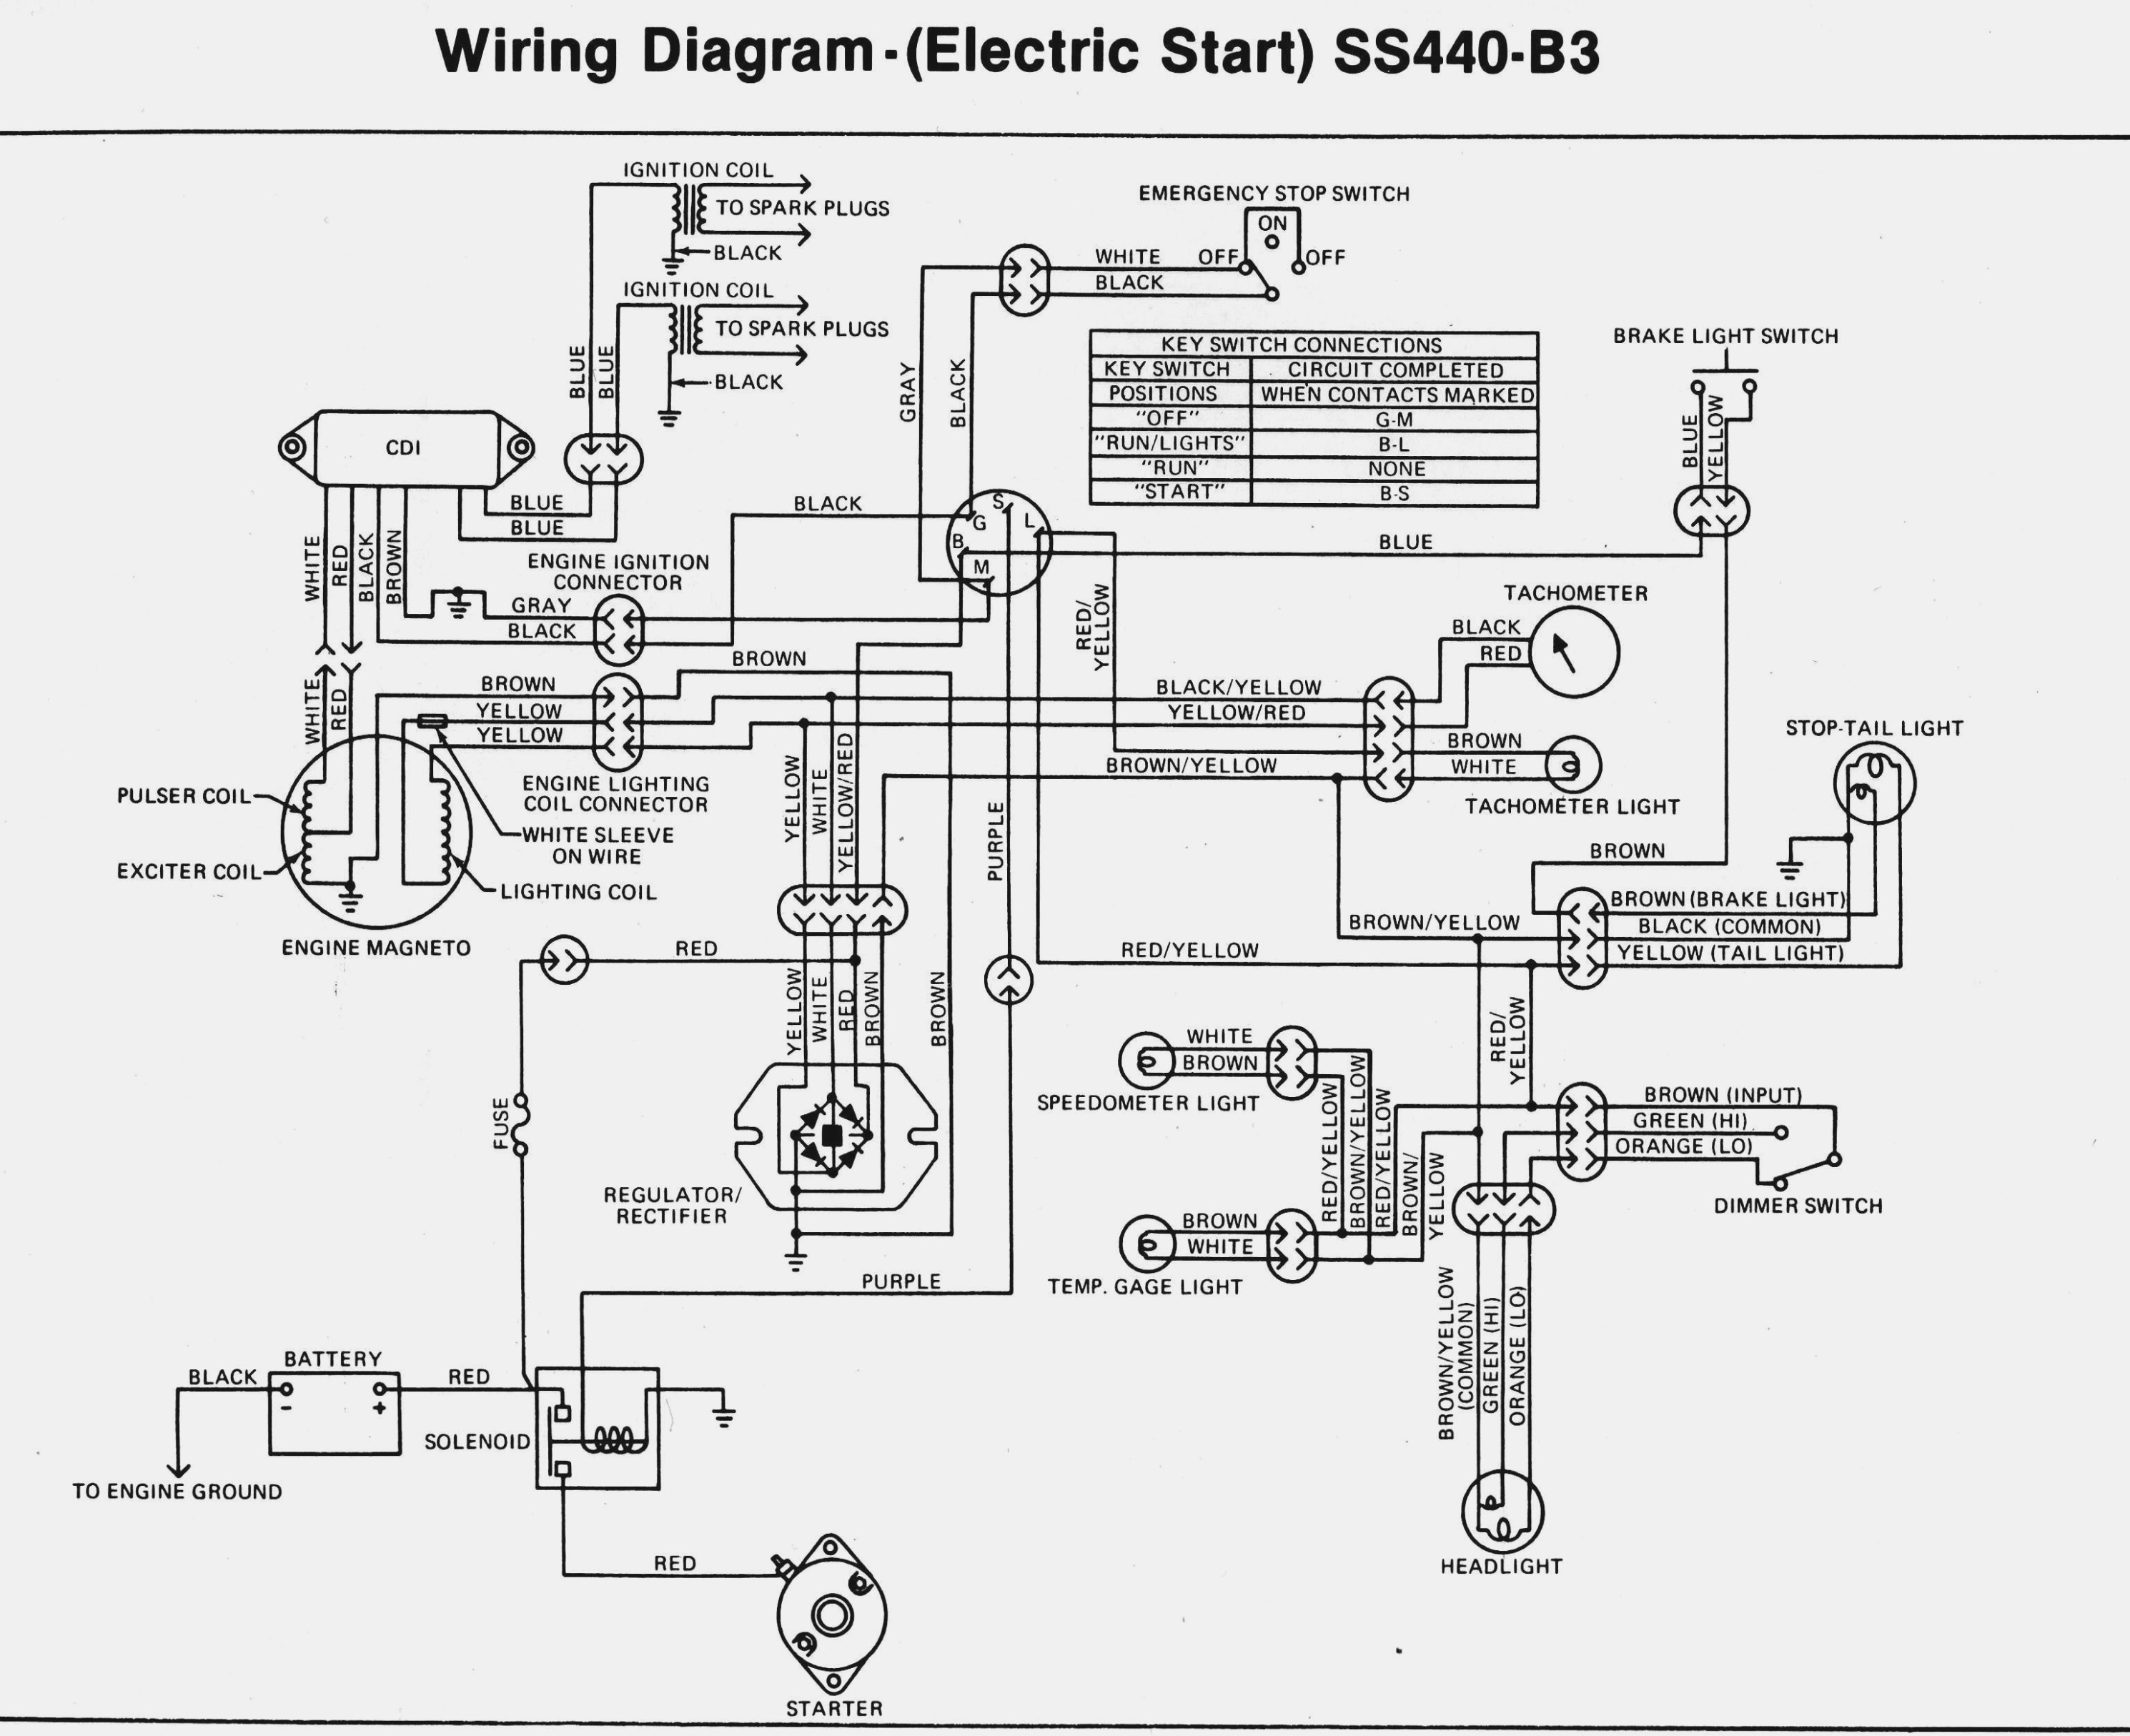 Gx390 Wiring Diagram - Wiring Diagram Data - Honda Gx390 Wiring Diagram